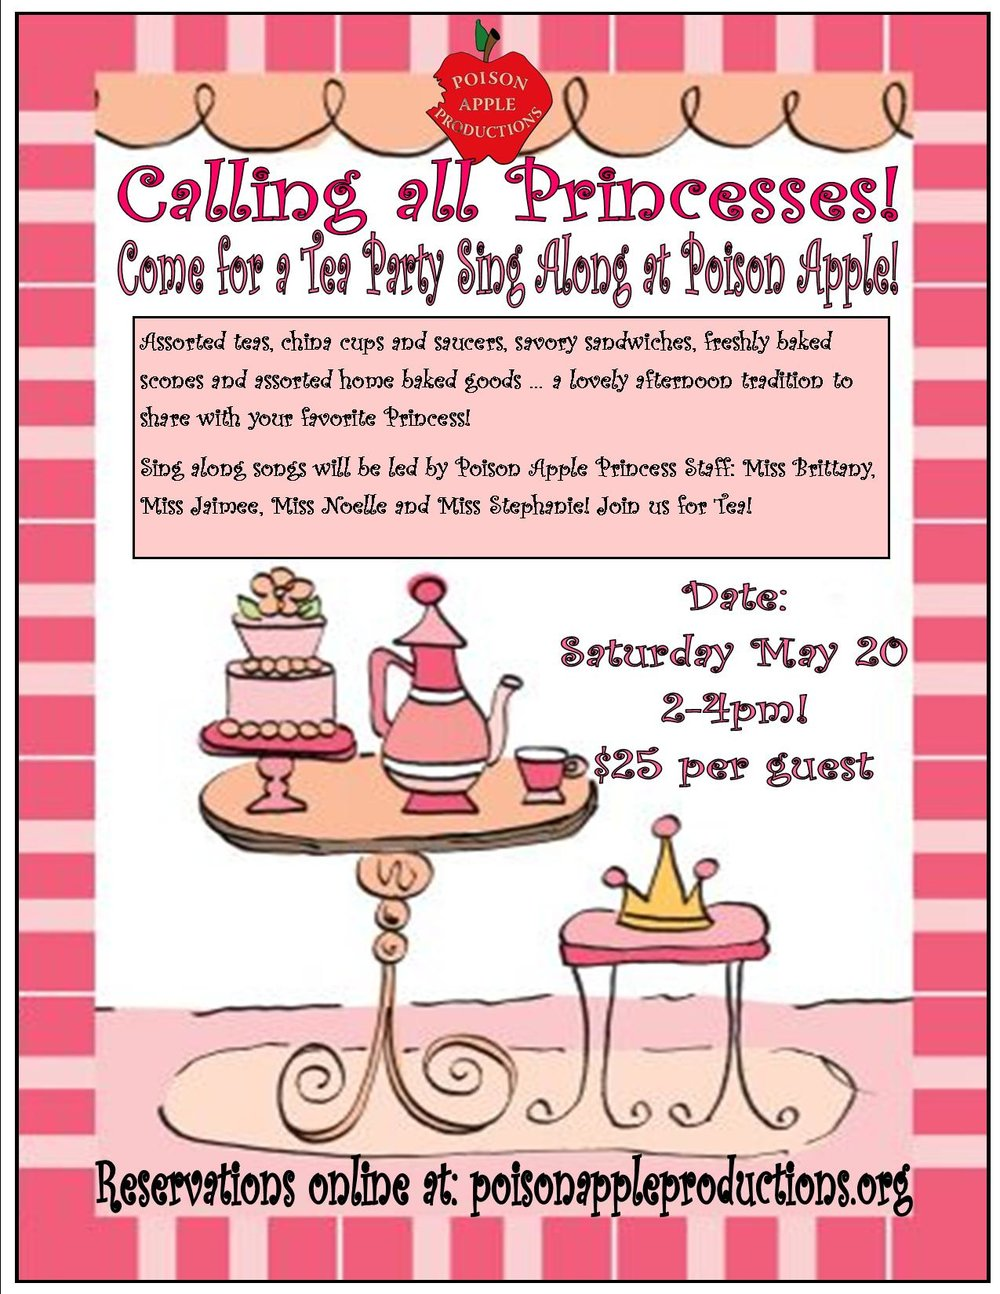 Princess Tea Flyer.jpg